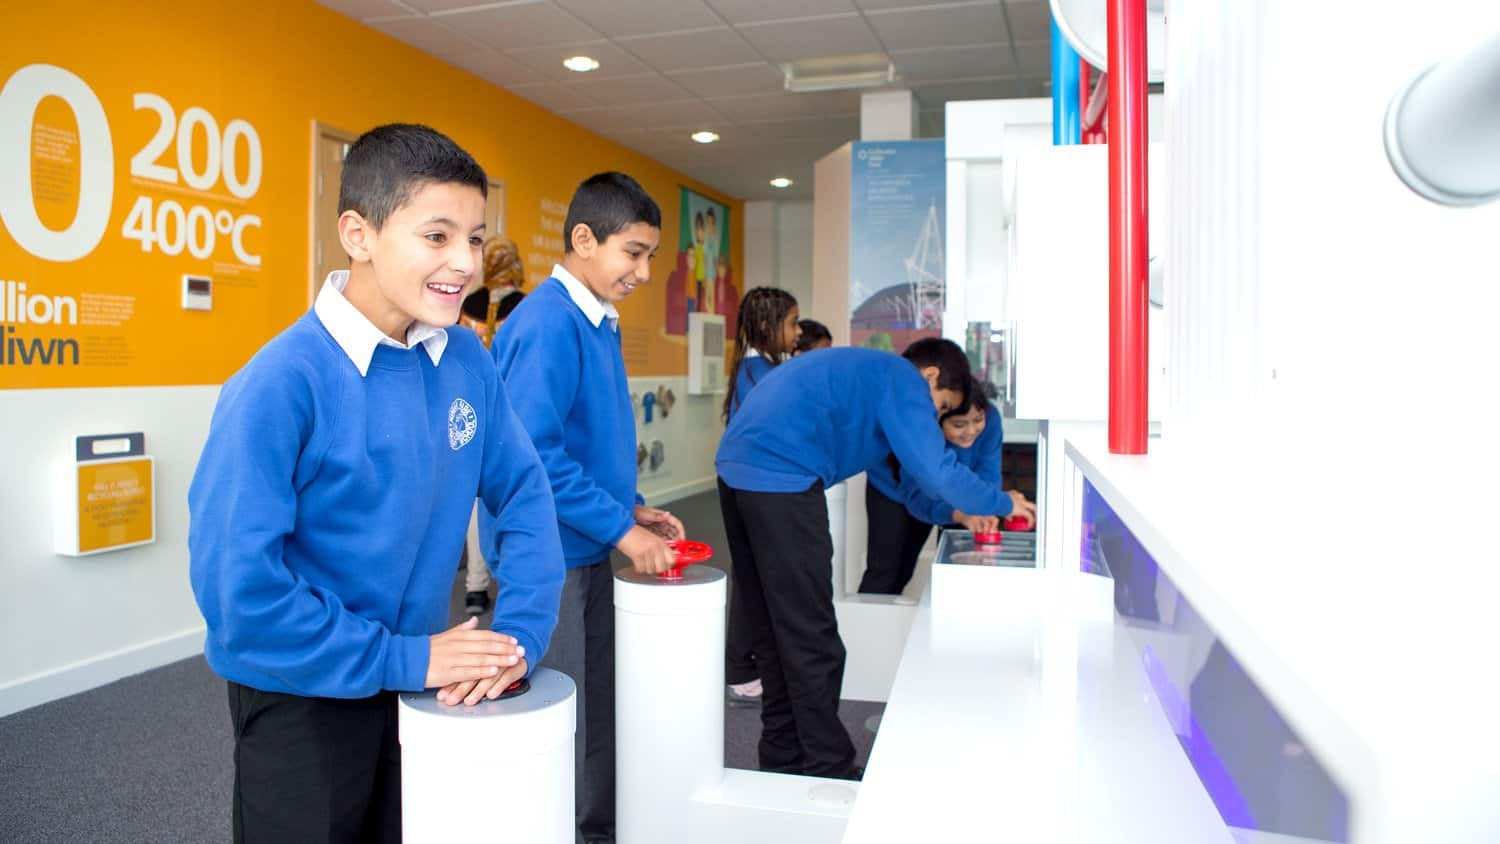 School children using Viridor Visitor Centre Energy Recovery Interactive by blackbox-av